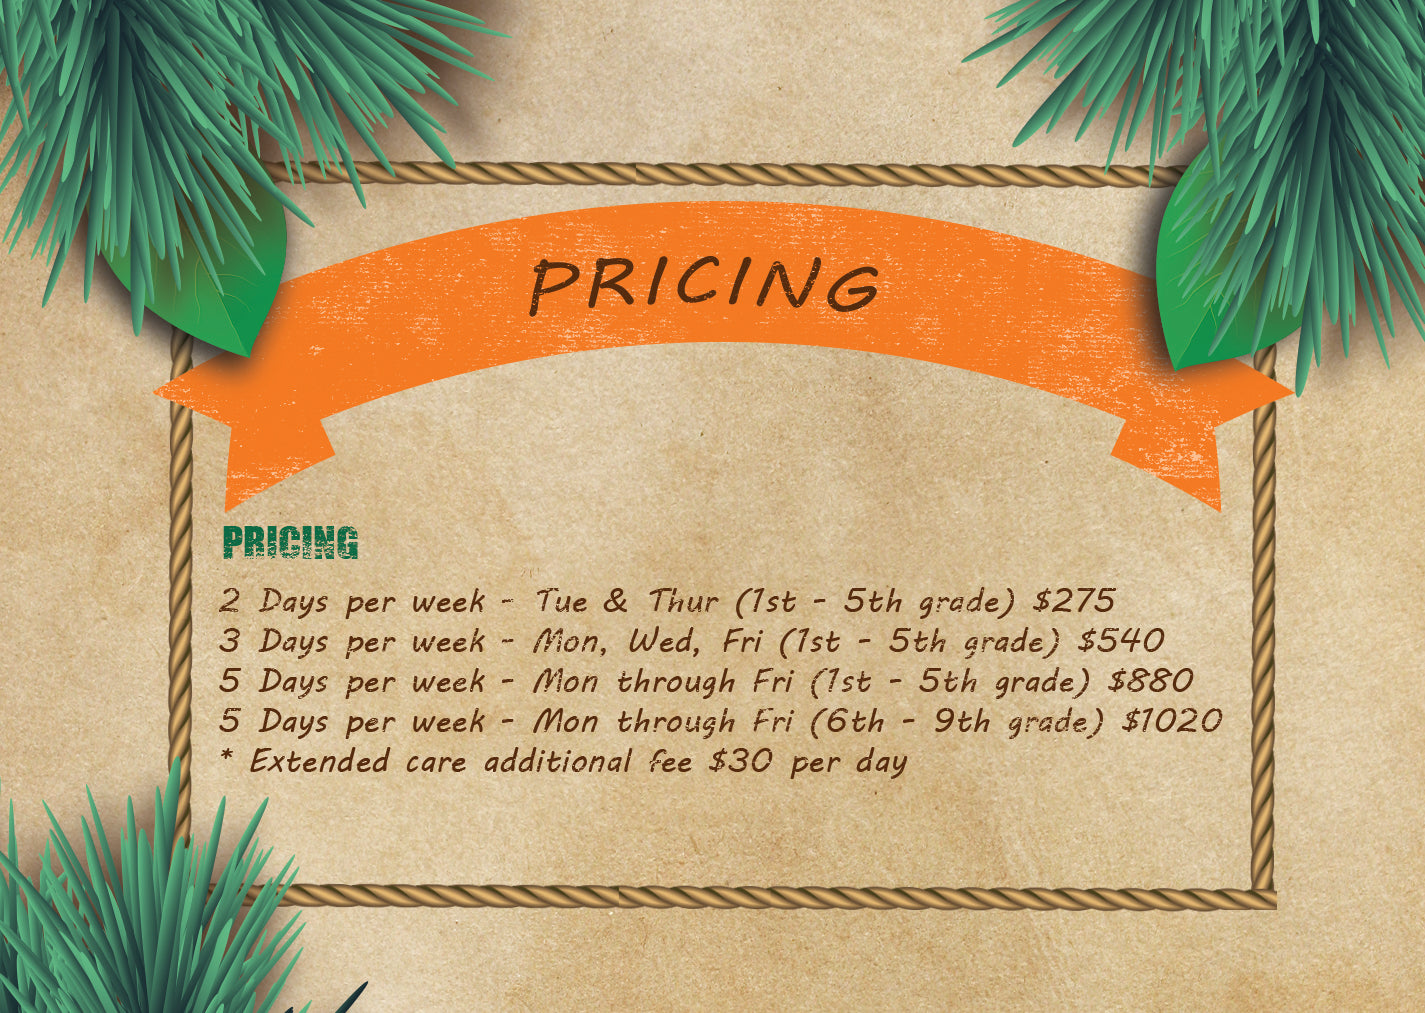 Pricing for summer camp